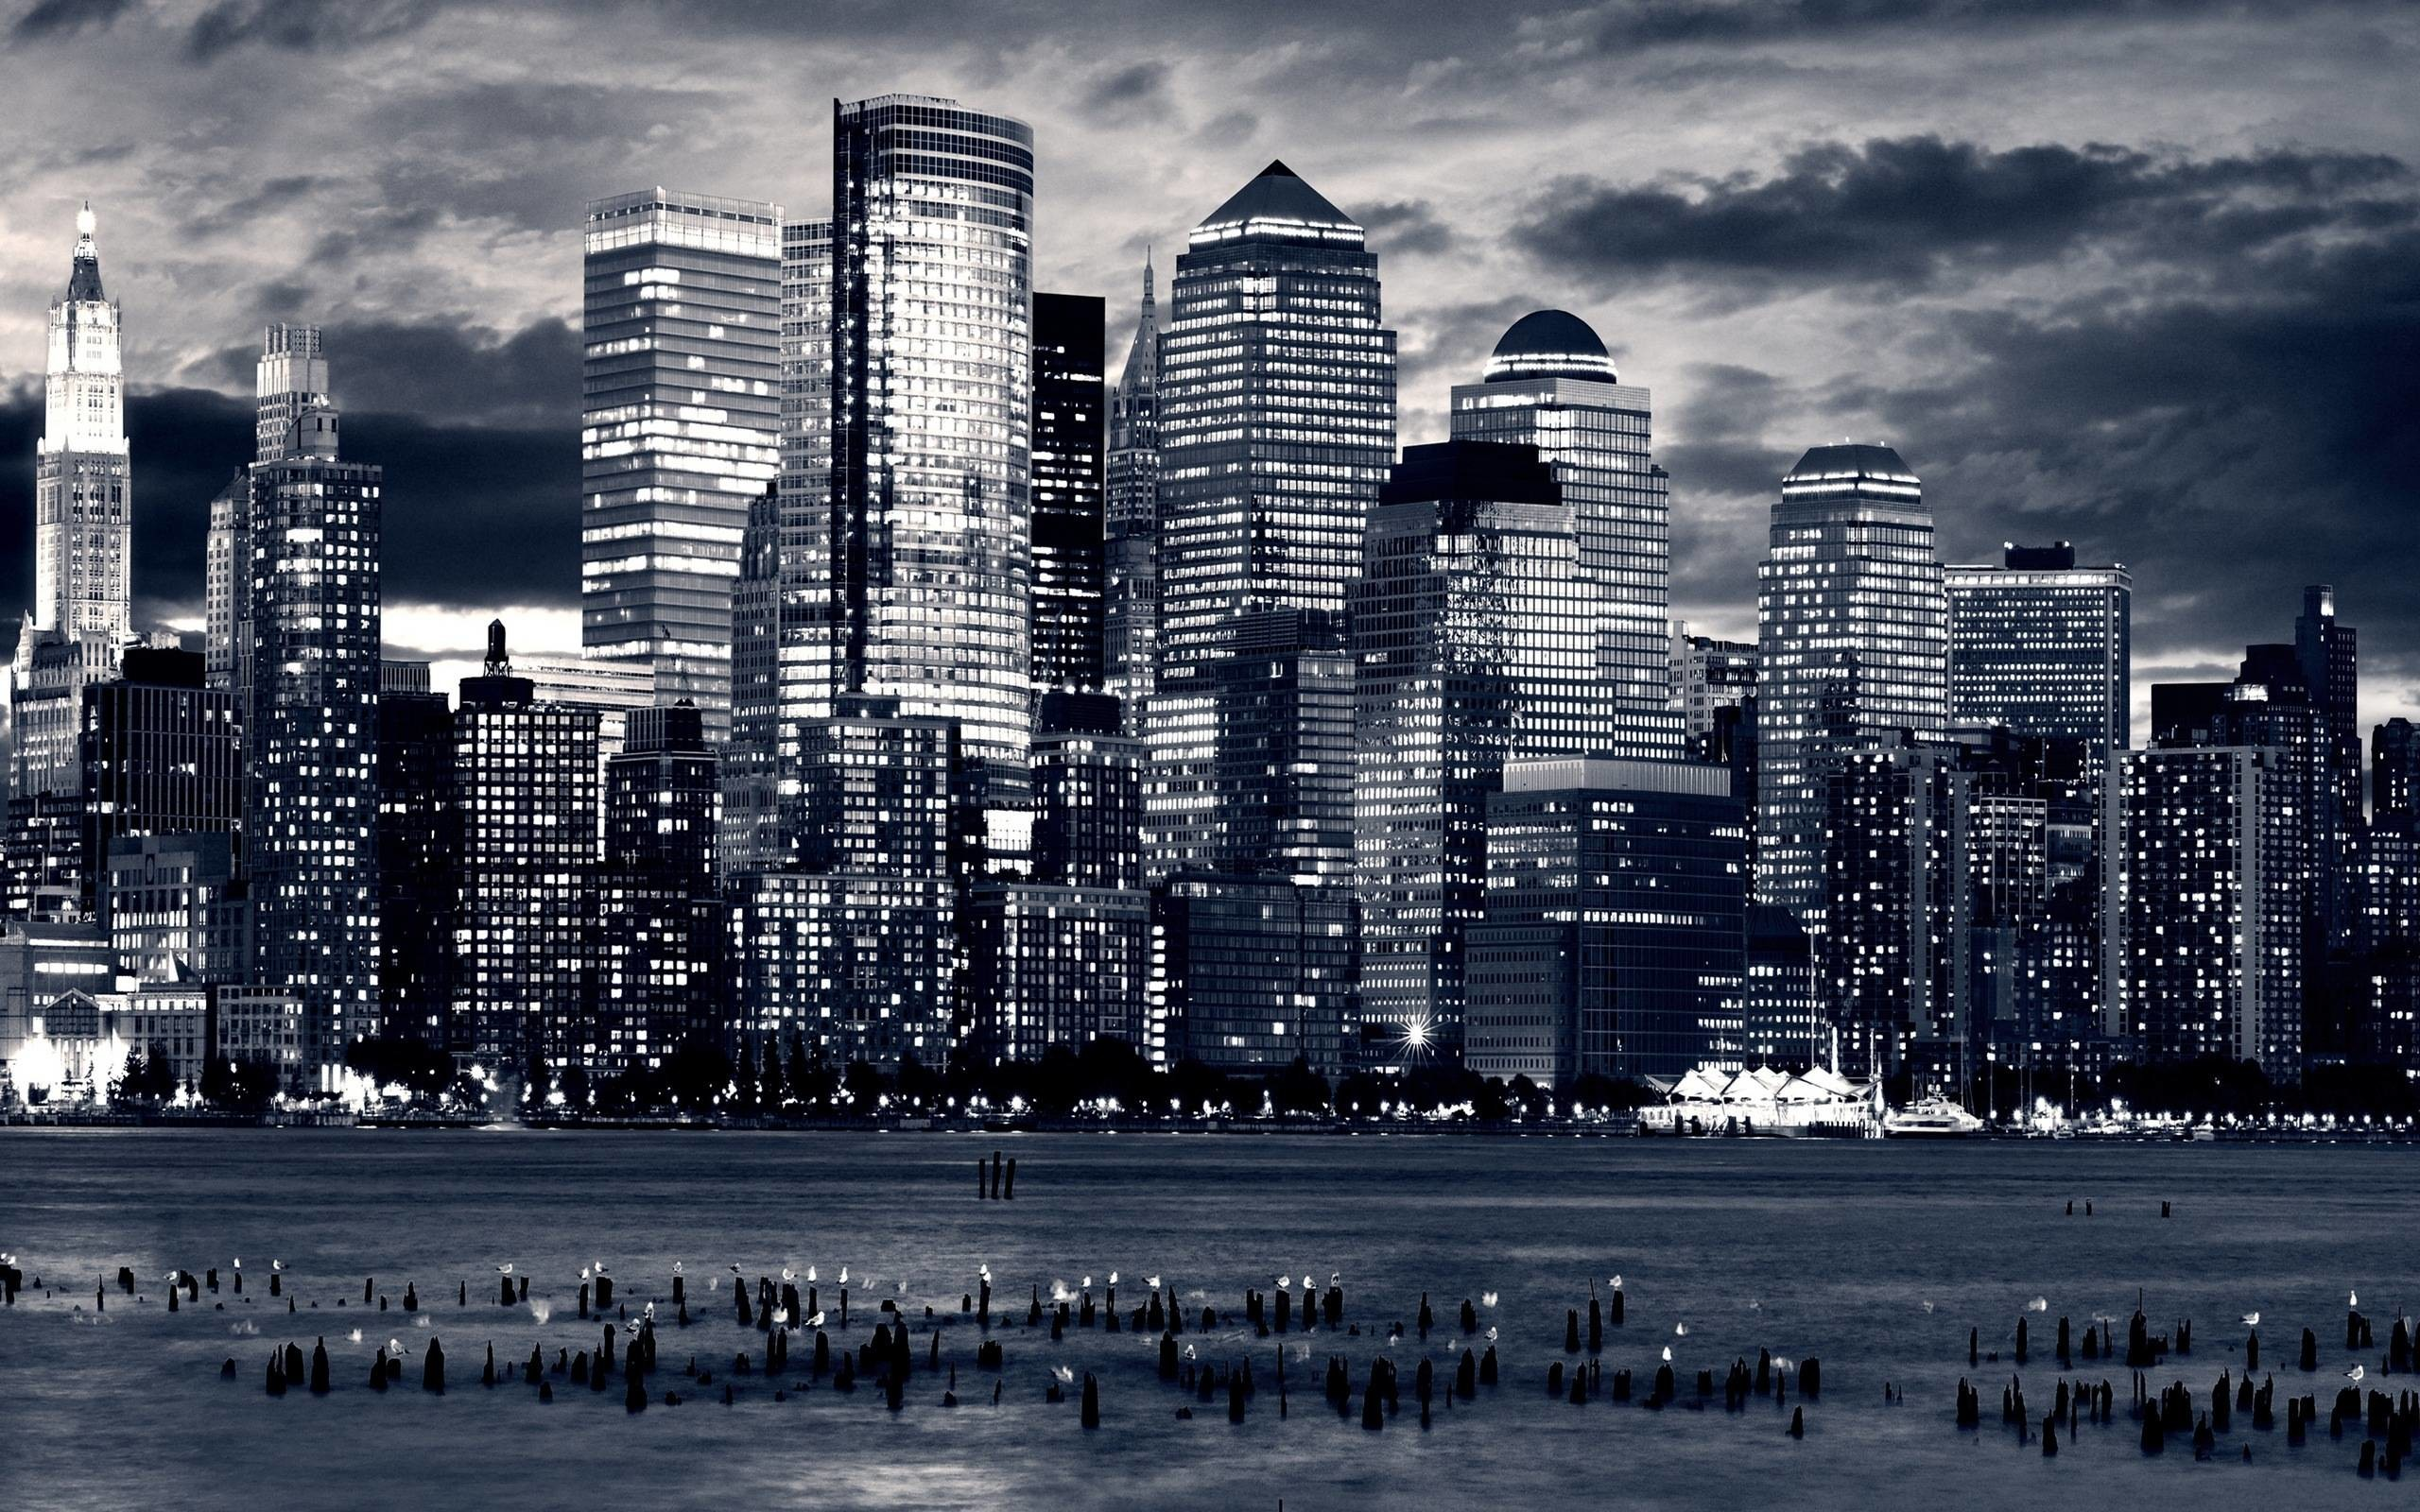 Res: 2560x1600, Category: Skyline Wallpaper Collections | SpotIMG ›› Page 6 | SpotIMG